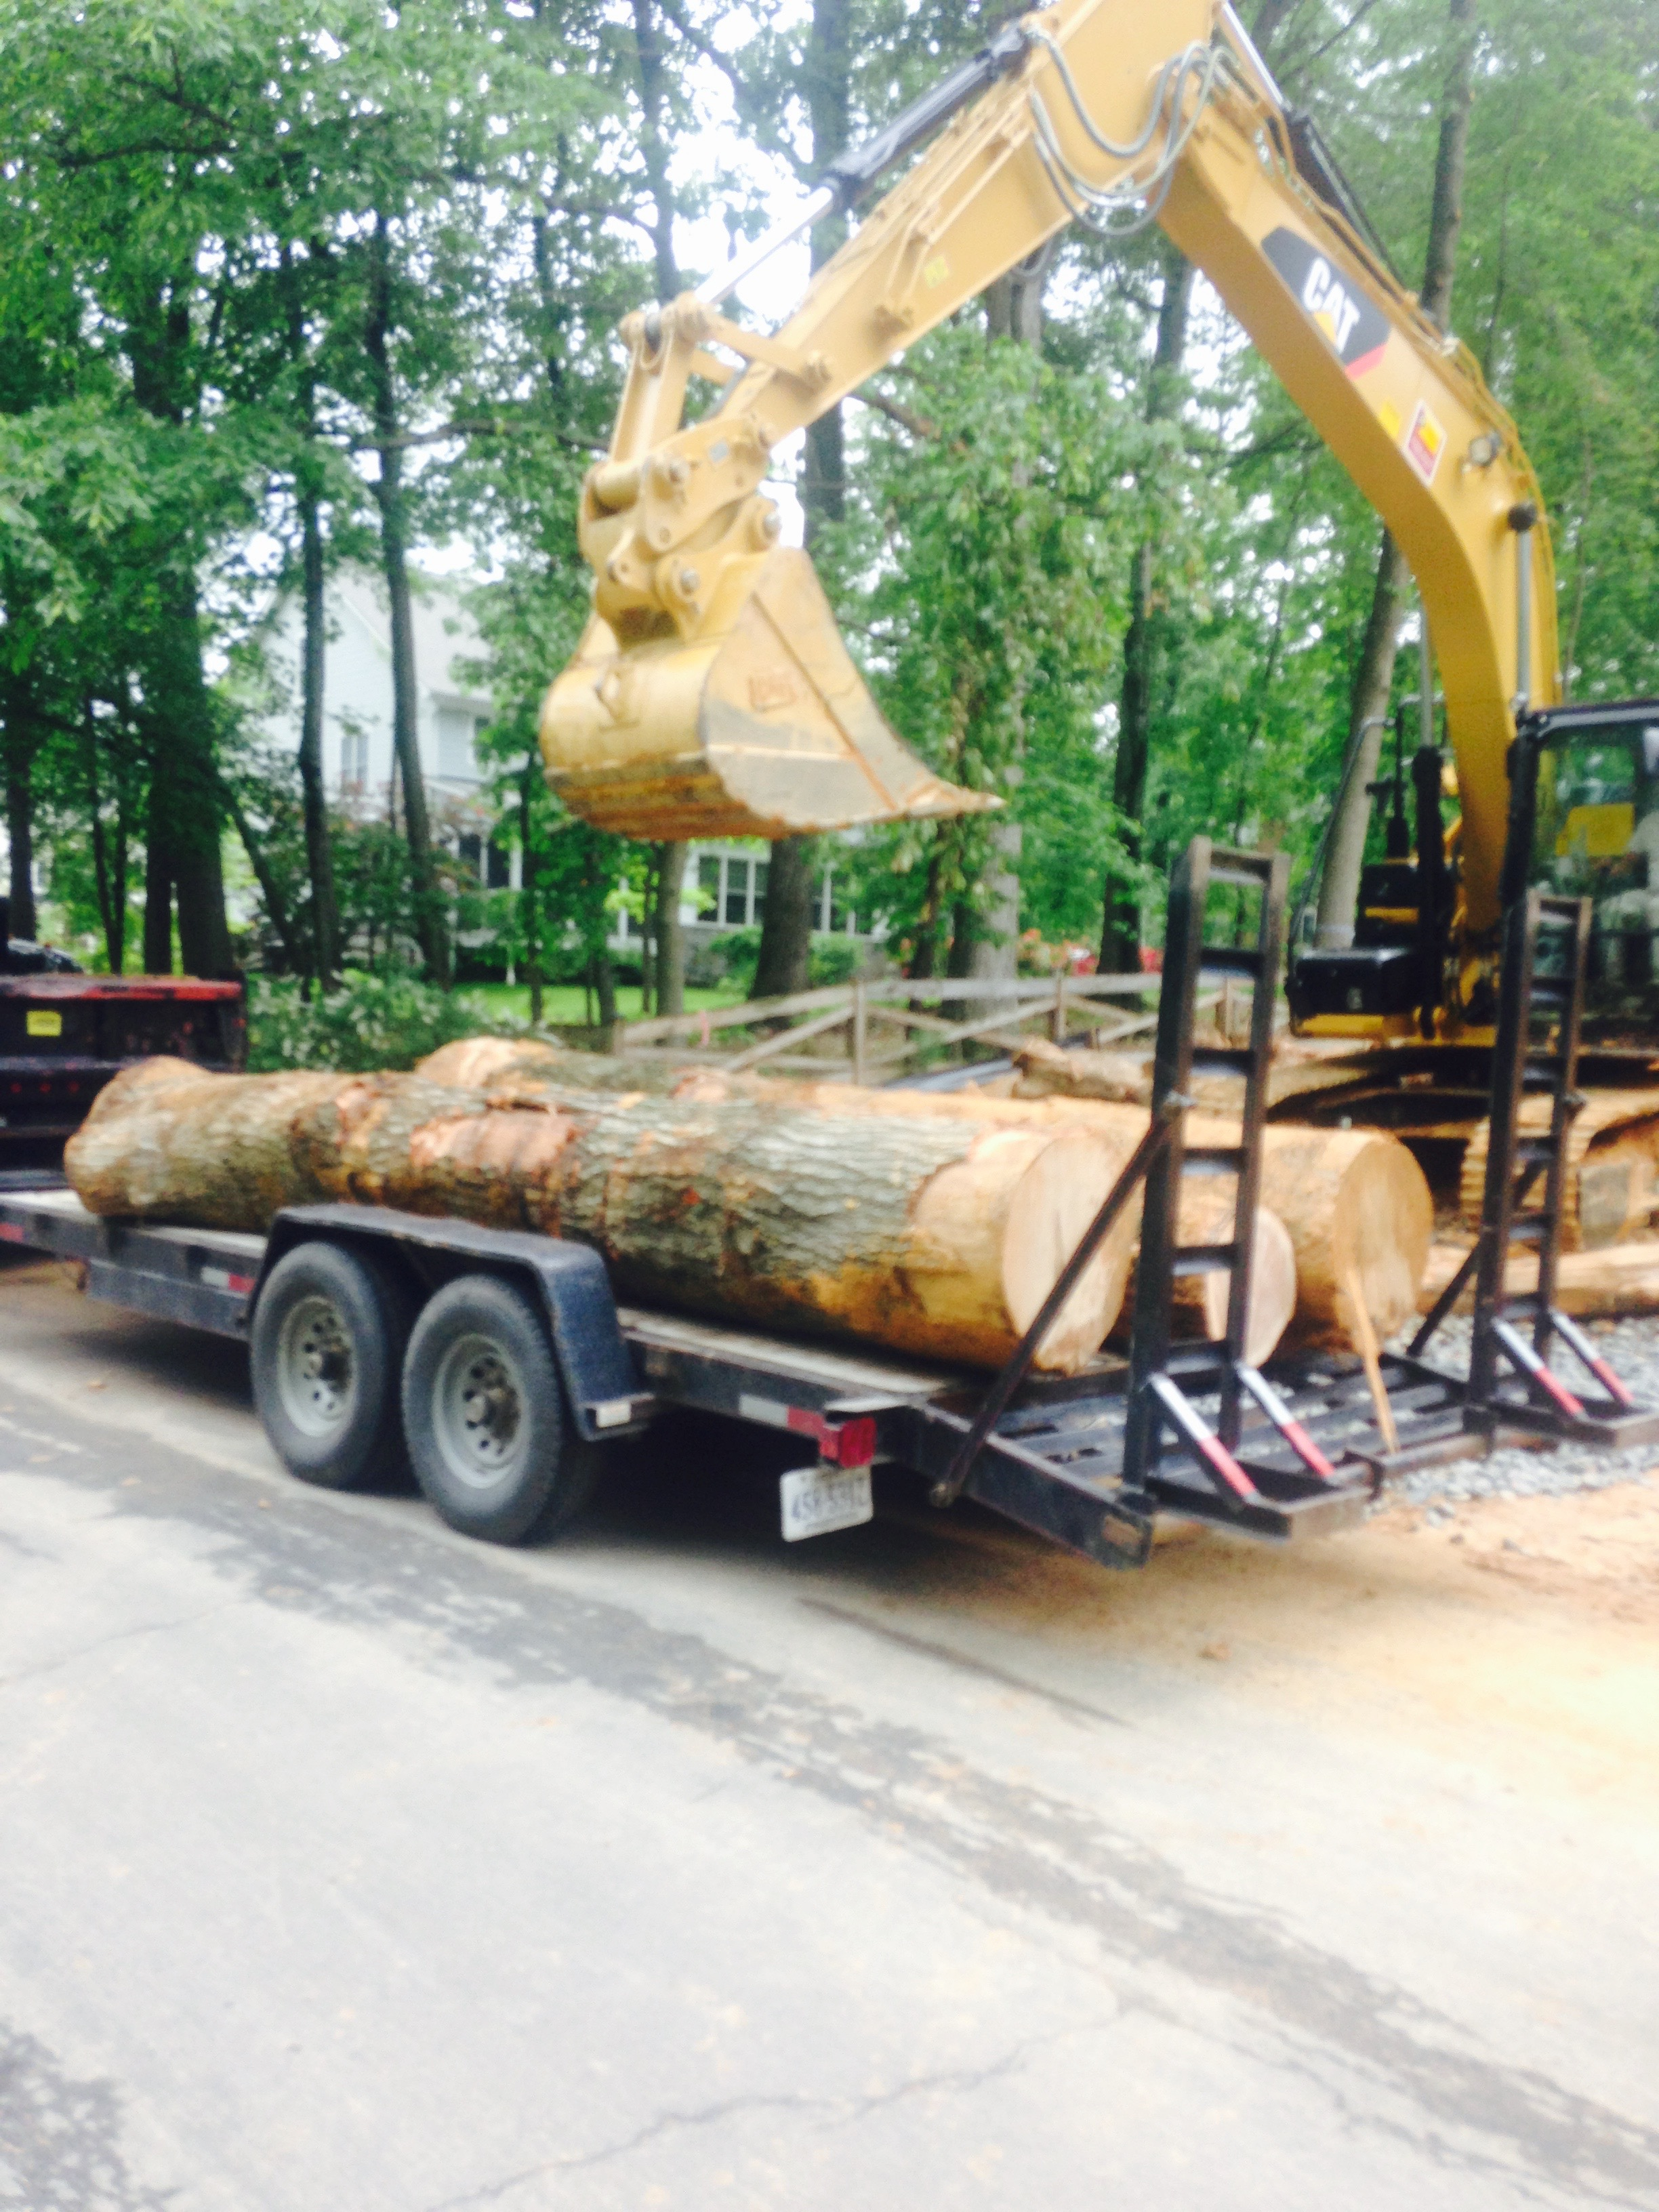 Sending cut trees to make hardwood for the new house